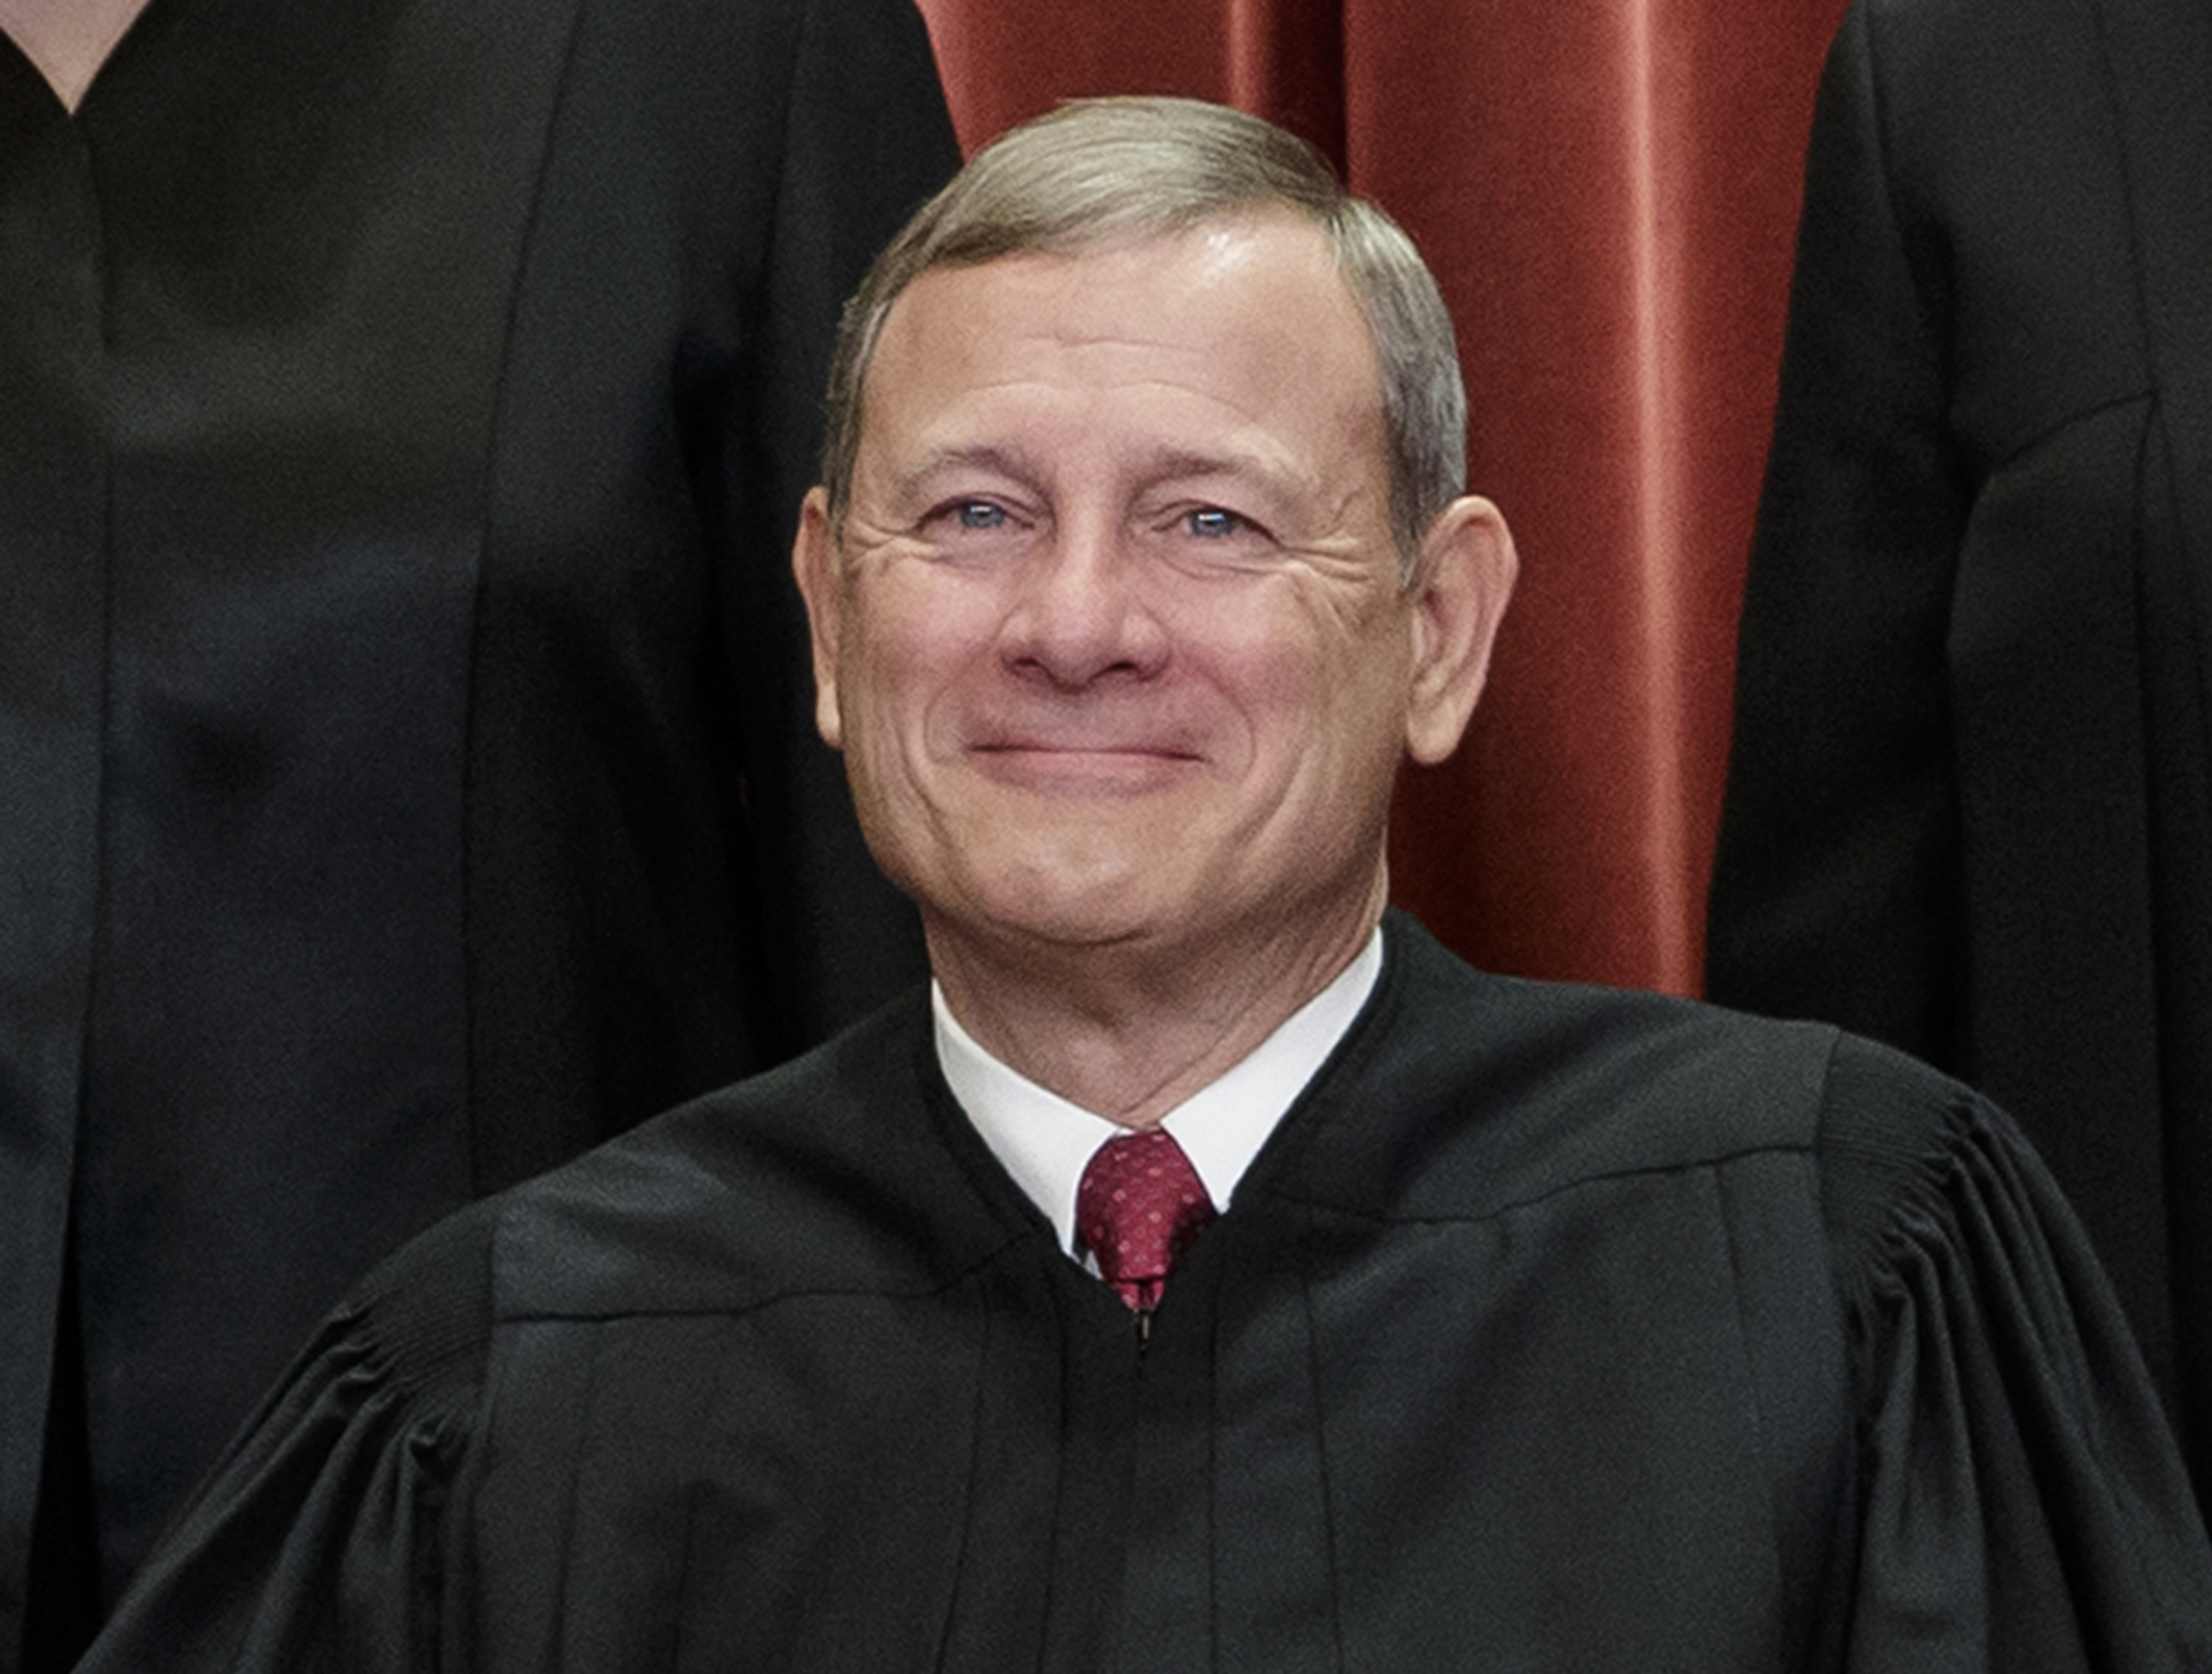 Roberts will tap his inner umpire in impeachment trial